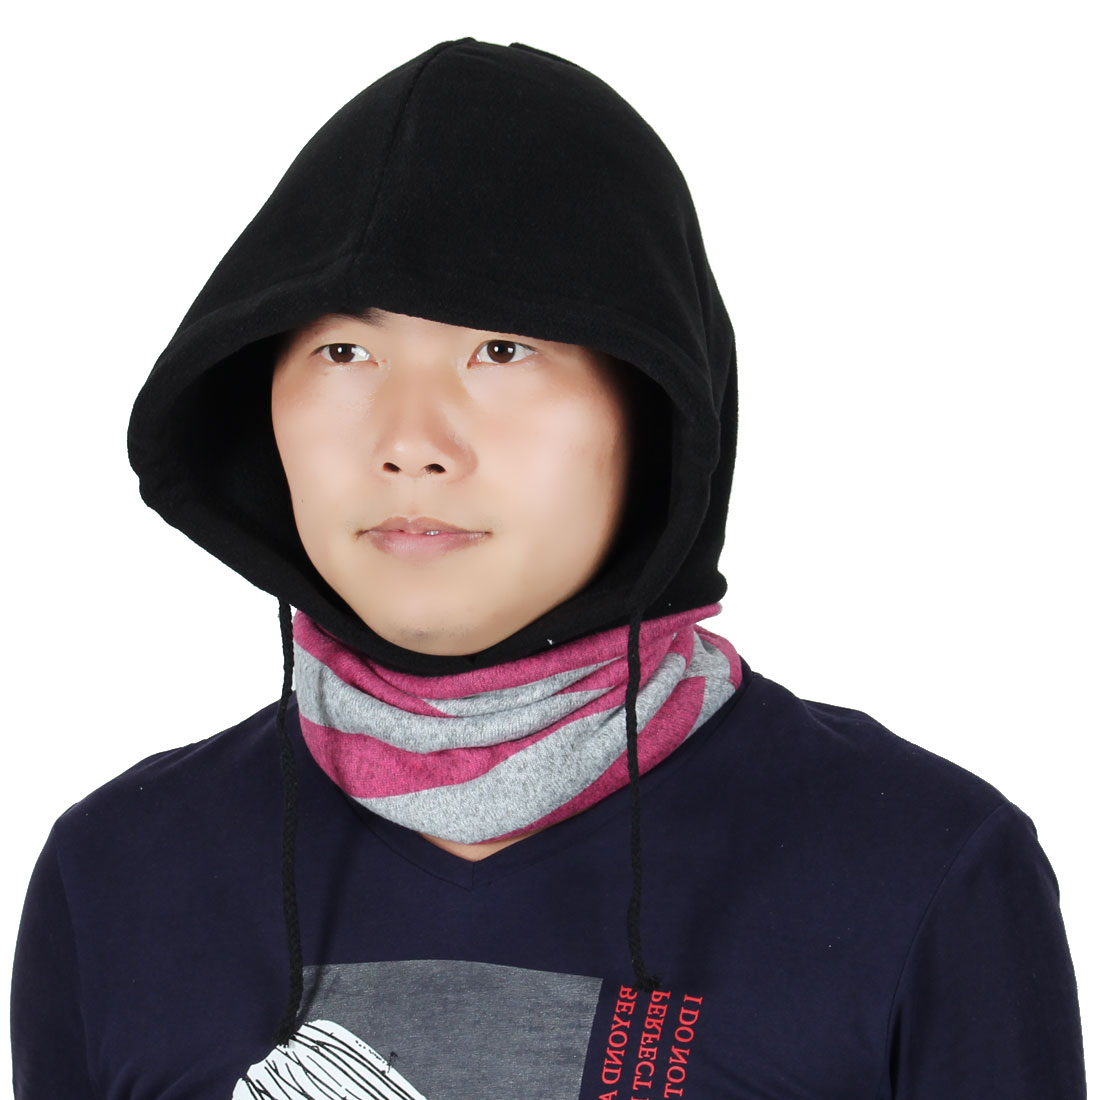 Fleece Adjustable Rope Cycling Double Layer Neck Warmer Protector Hood Balaclava by